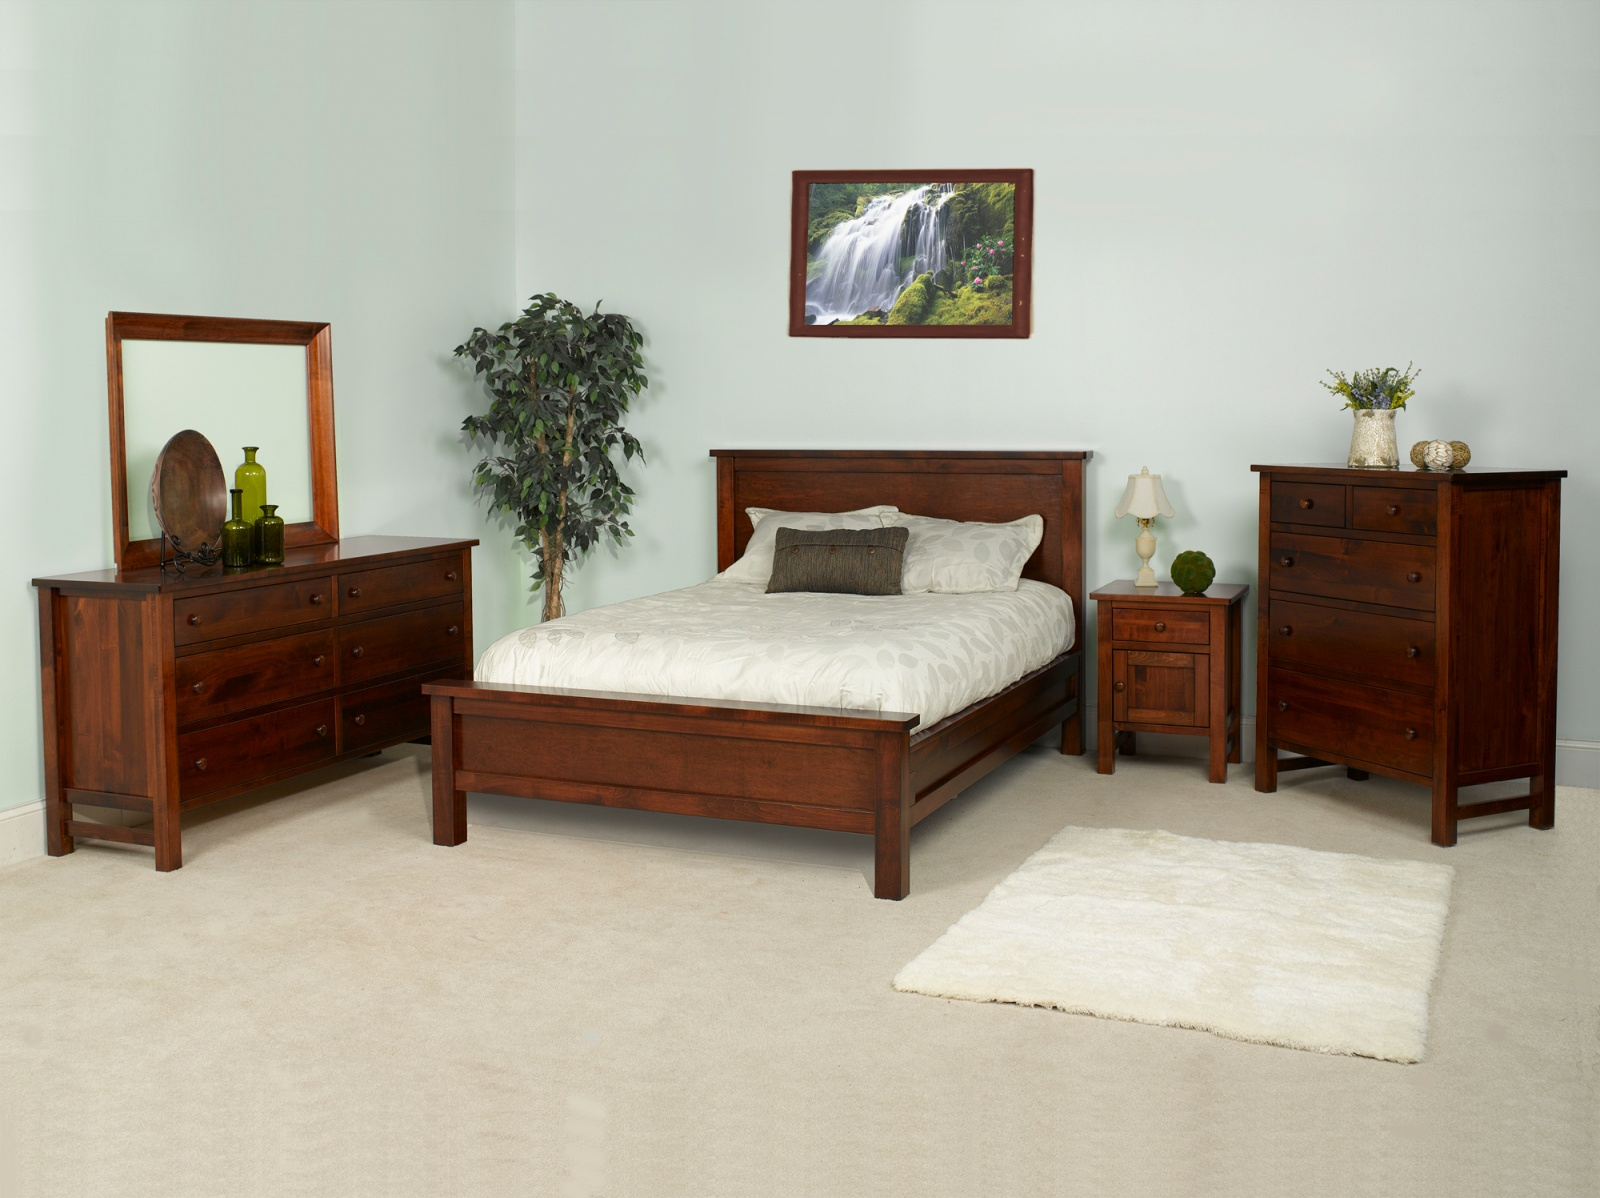 Cabin Creek Setting with Cabin Creek Bed.jpg